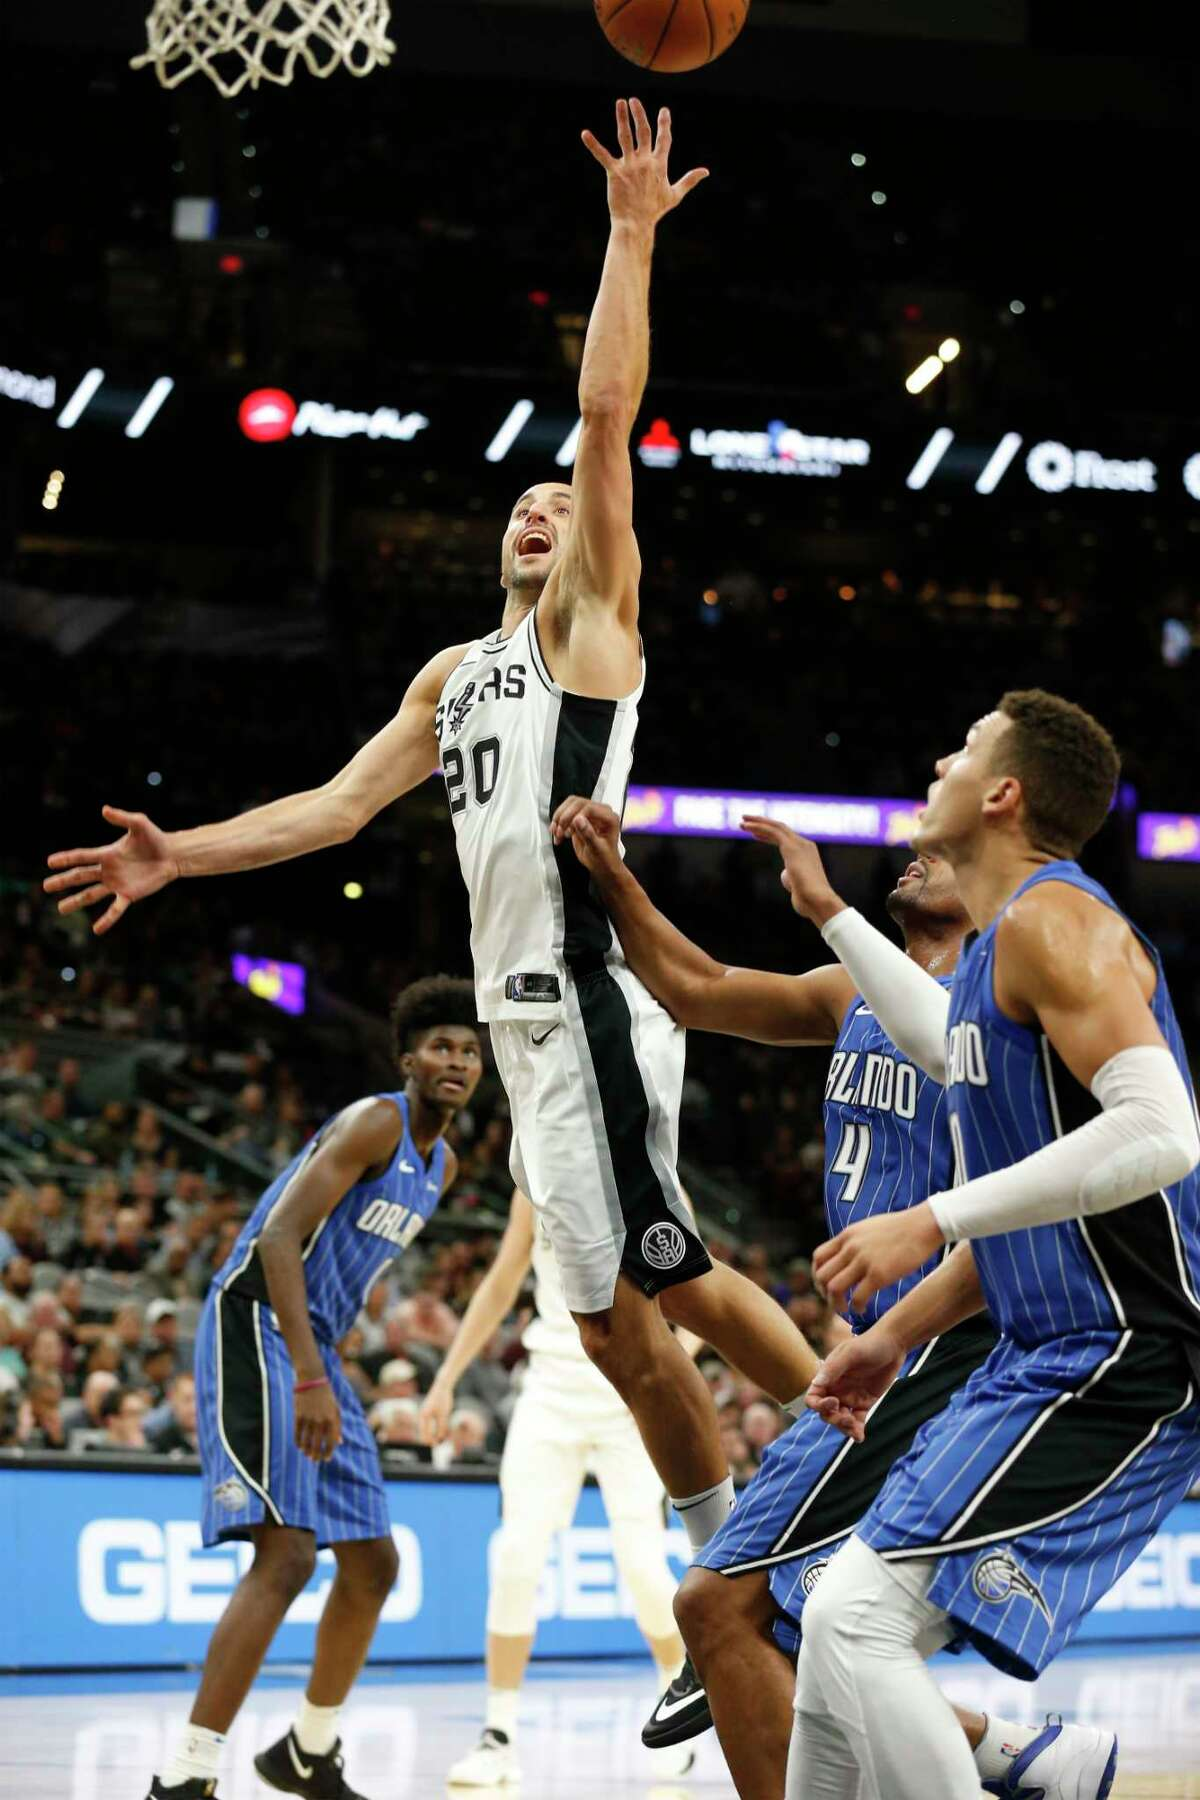 Spurs' Manu Ginobili (20) lays up a shot against Orlando Magic's Arron Afflalo (04) and Aaron Gordon (00) during their pre-season game at the AT&T Center on Tuesday, Oct. 10, 2017.